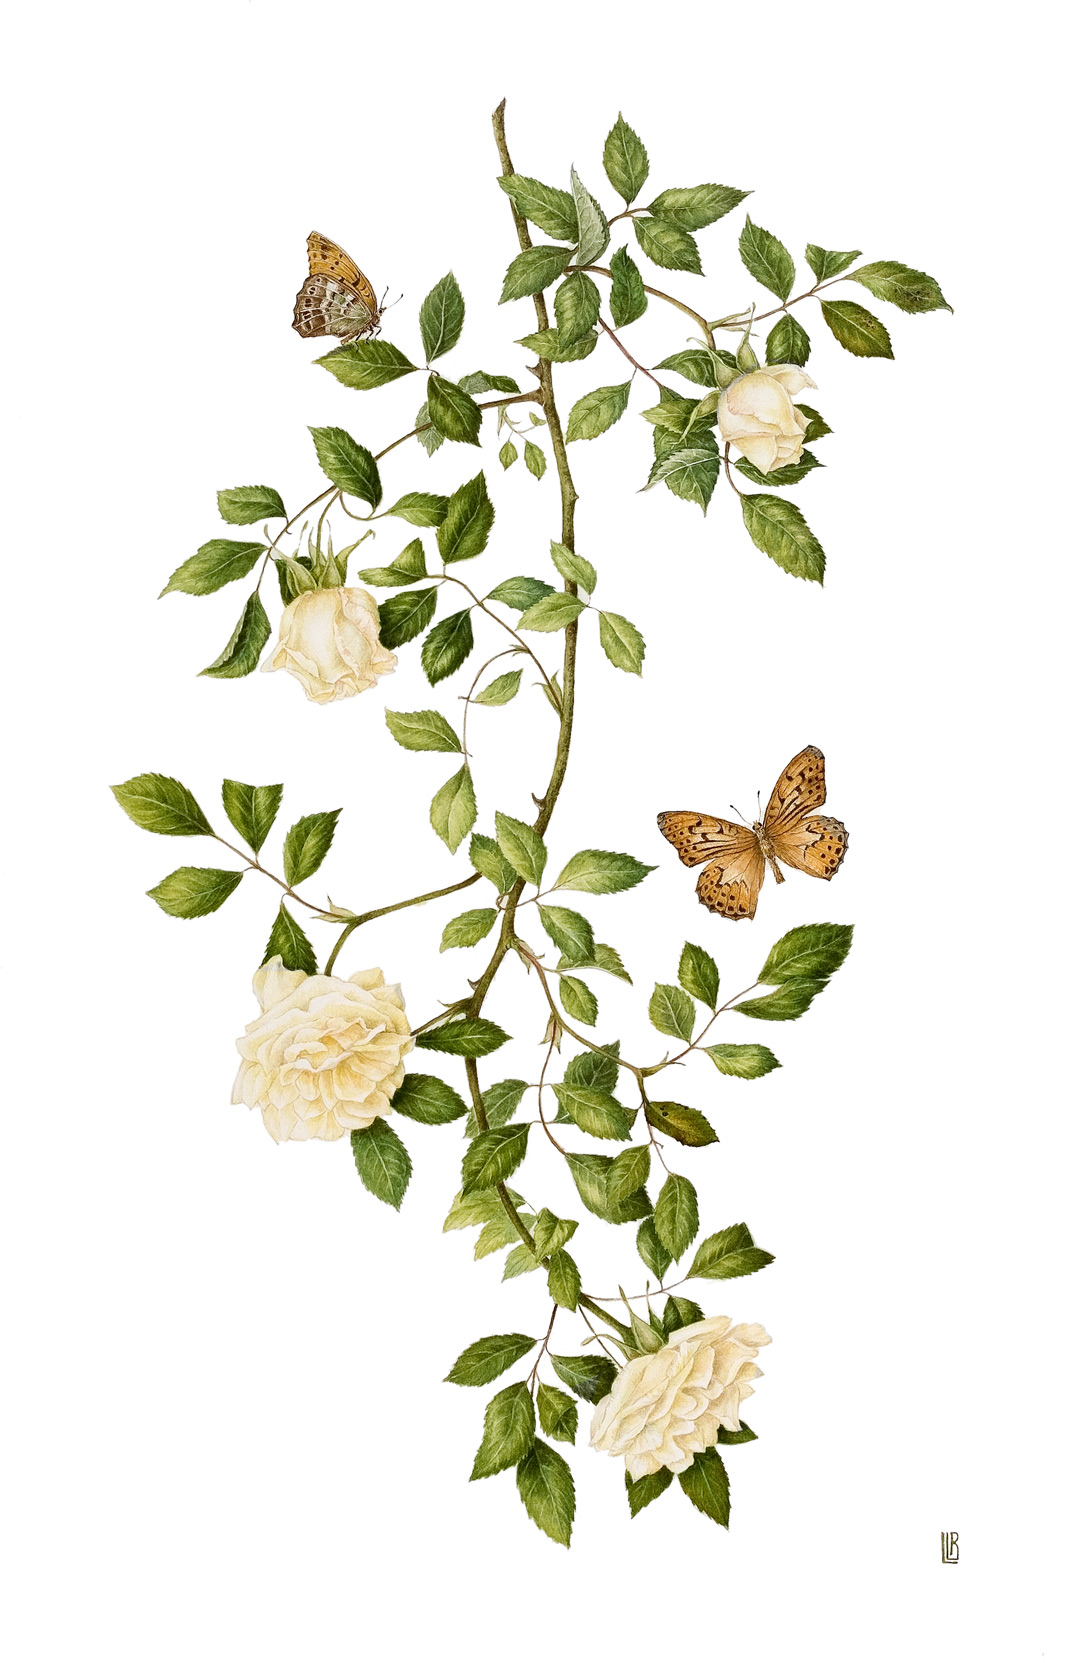 Rosa 'Park's Yellow Tea-scented China' with Argynnis paphia